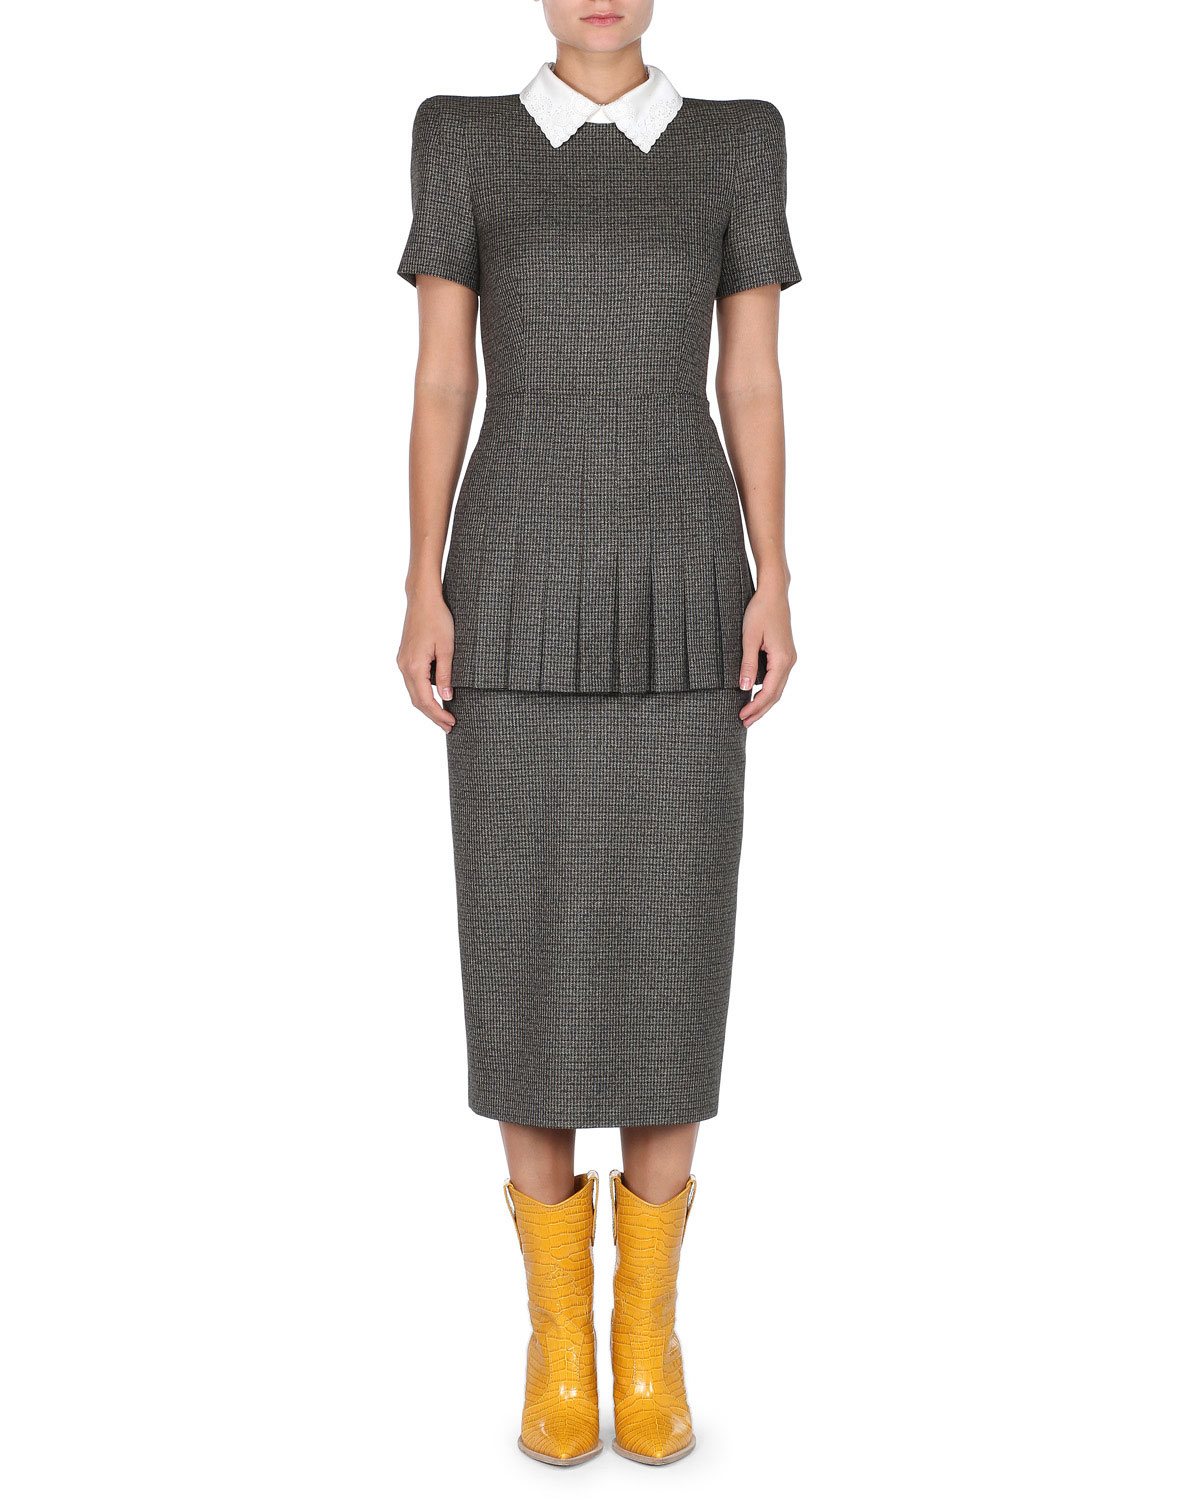 FENDI SHORT-SLEEVE CHECK PLEATED PEPLUM MIDI SHEATH DRESS W/ REMOVABLE COLLAR